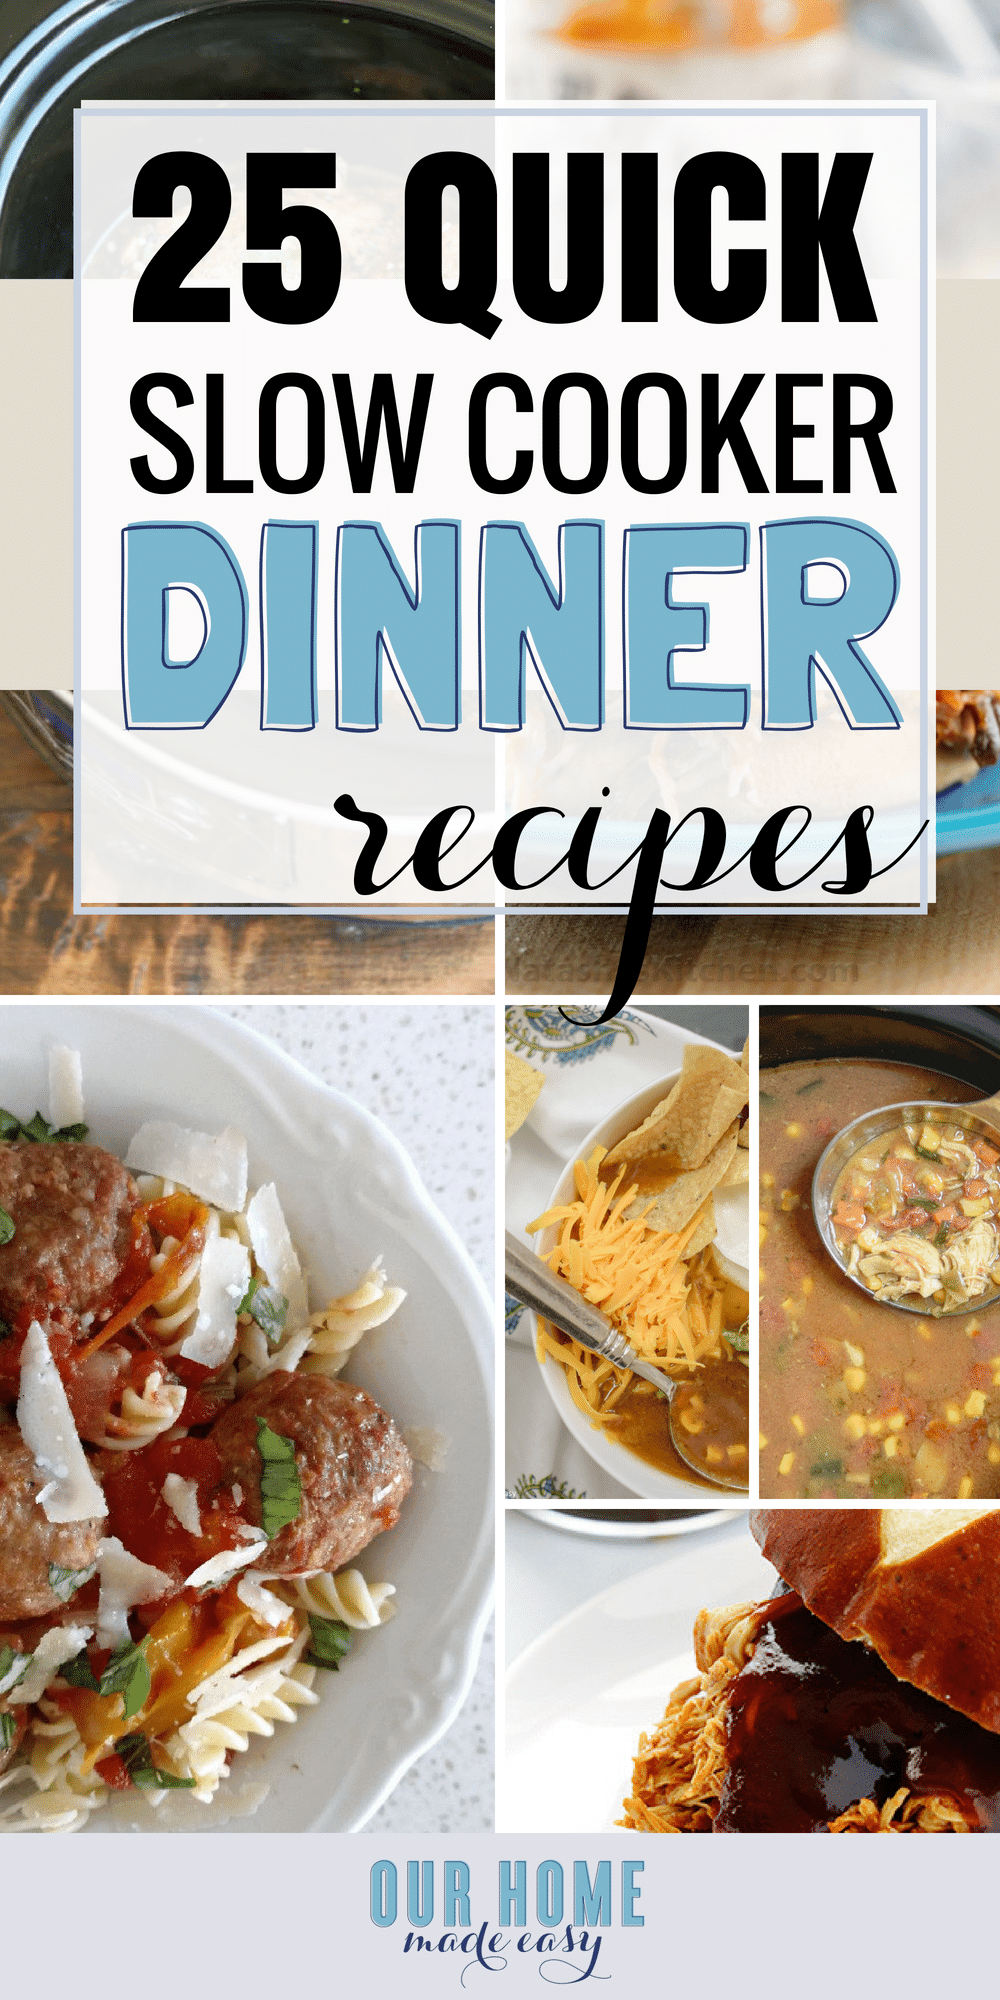 Here are more than 25 easy slow cooker recipes for dinner! They are perfect for making during the week. Set and forget them until dinnertime! Click to see them all! #dinner #slowcooker #crockpot #fall